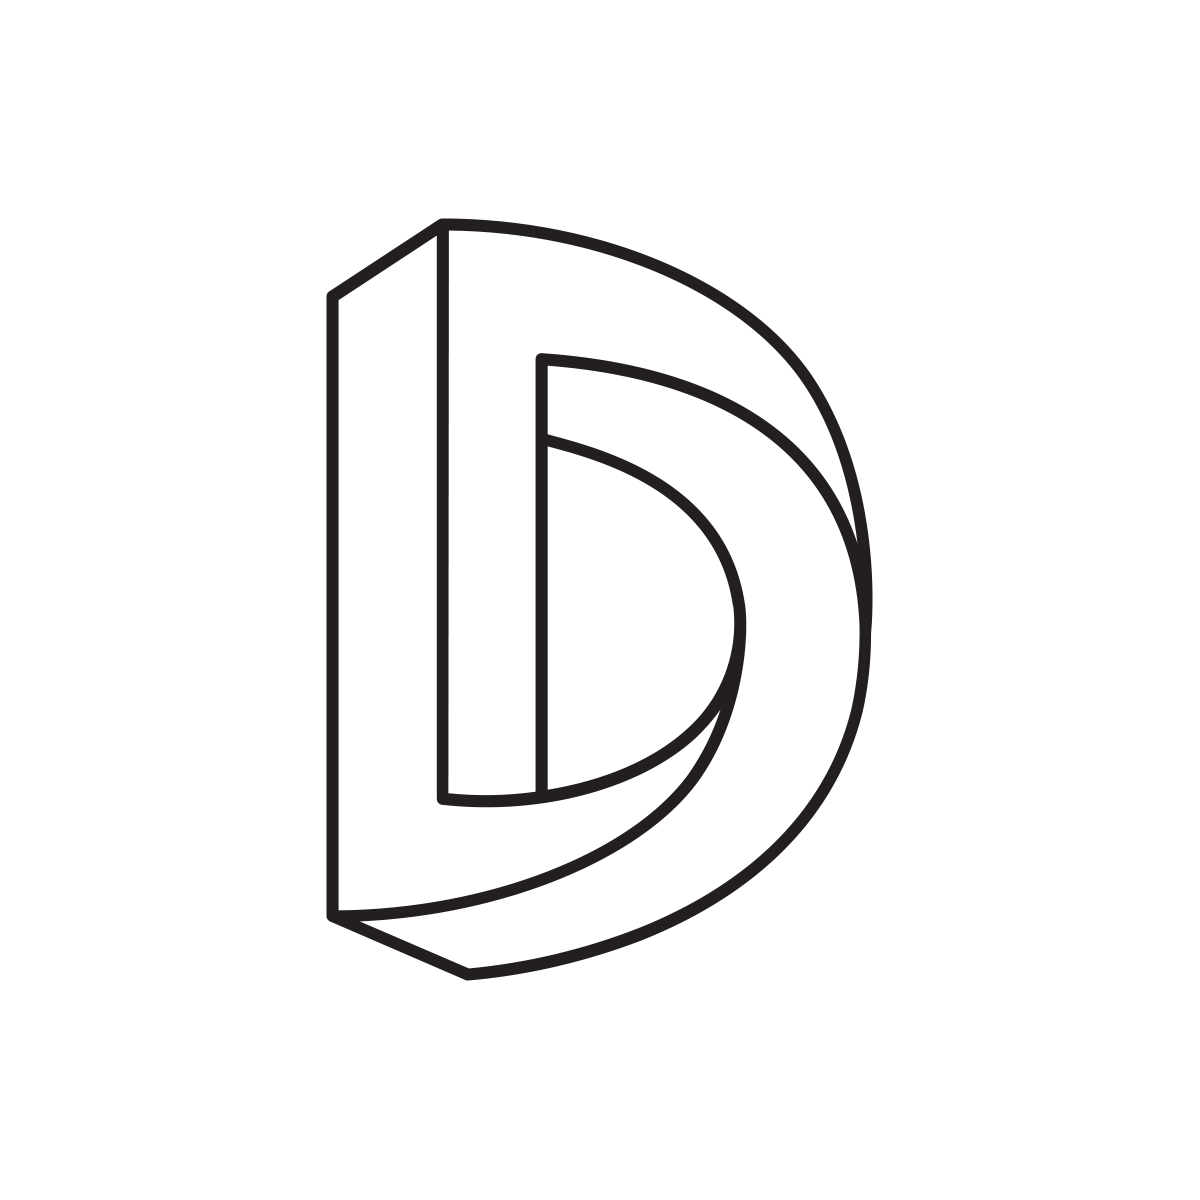 Dia_icon_black_outline